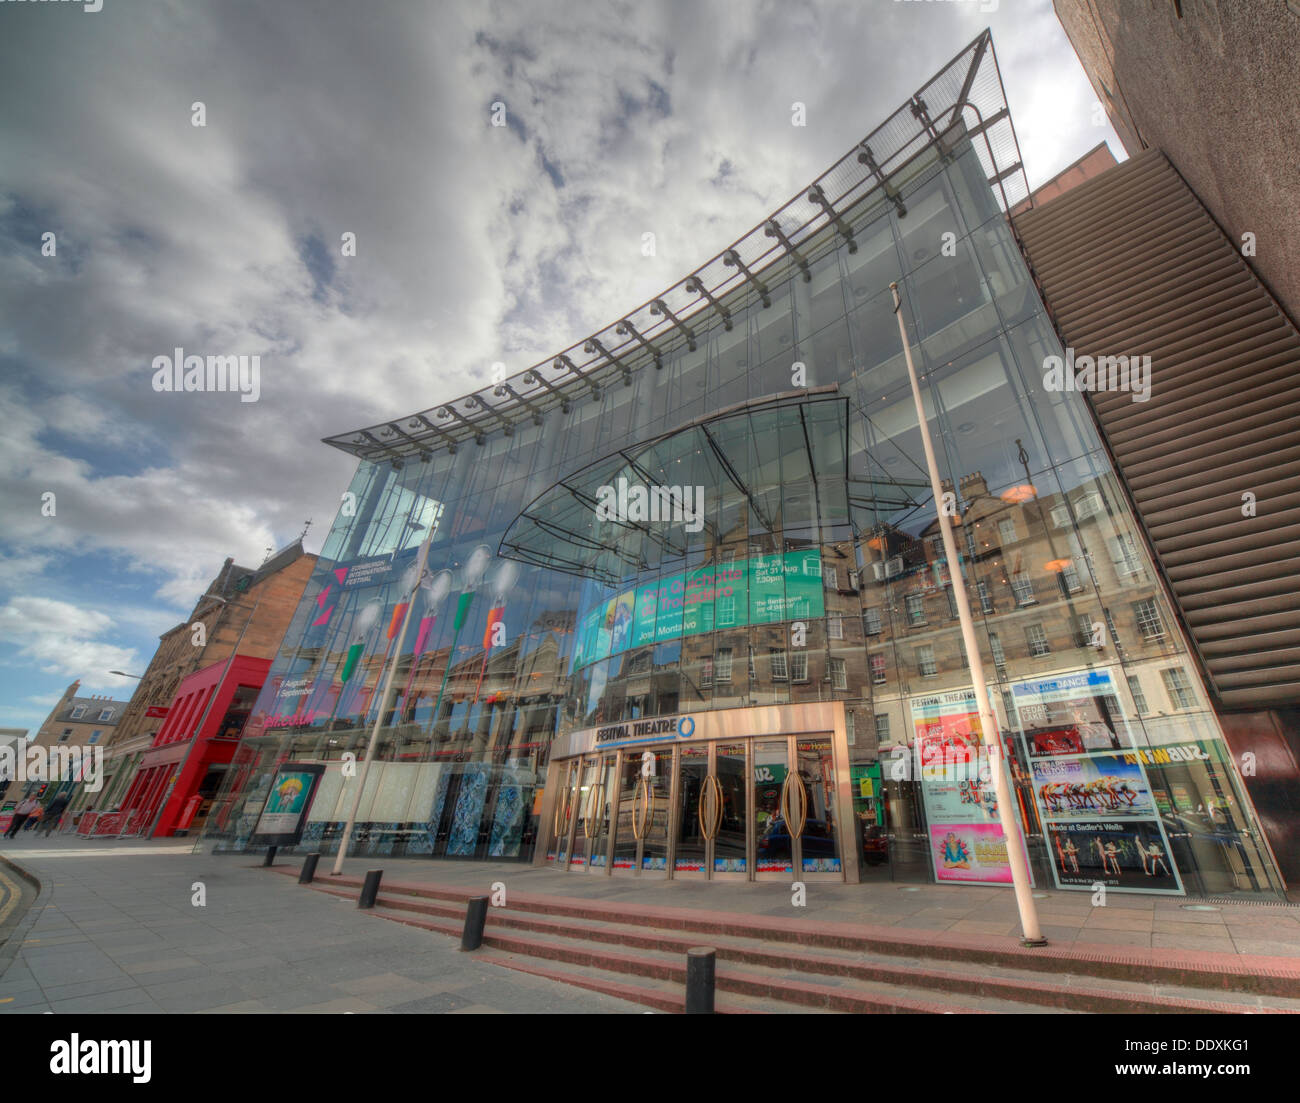 Edinburgh Festival Theatre Nicholson St Stock Photo